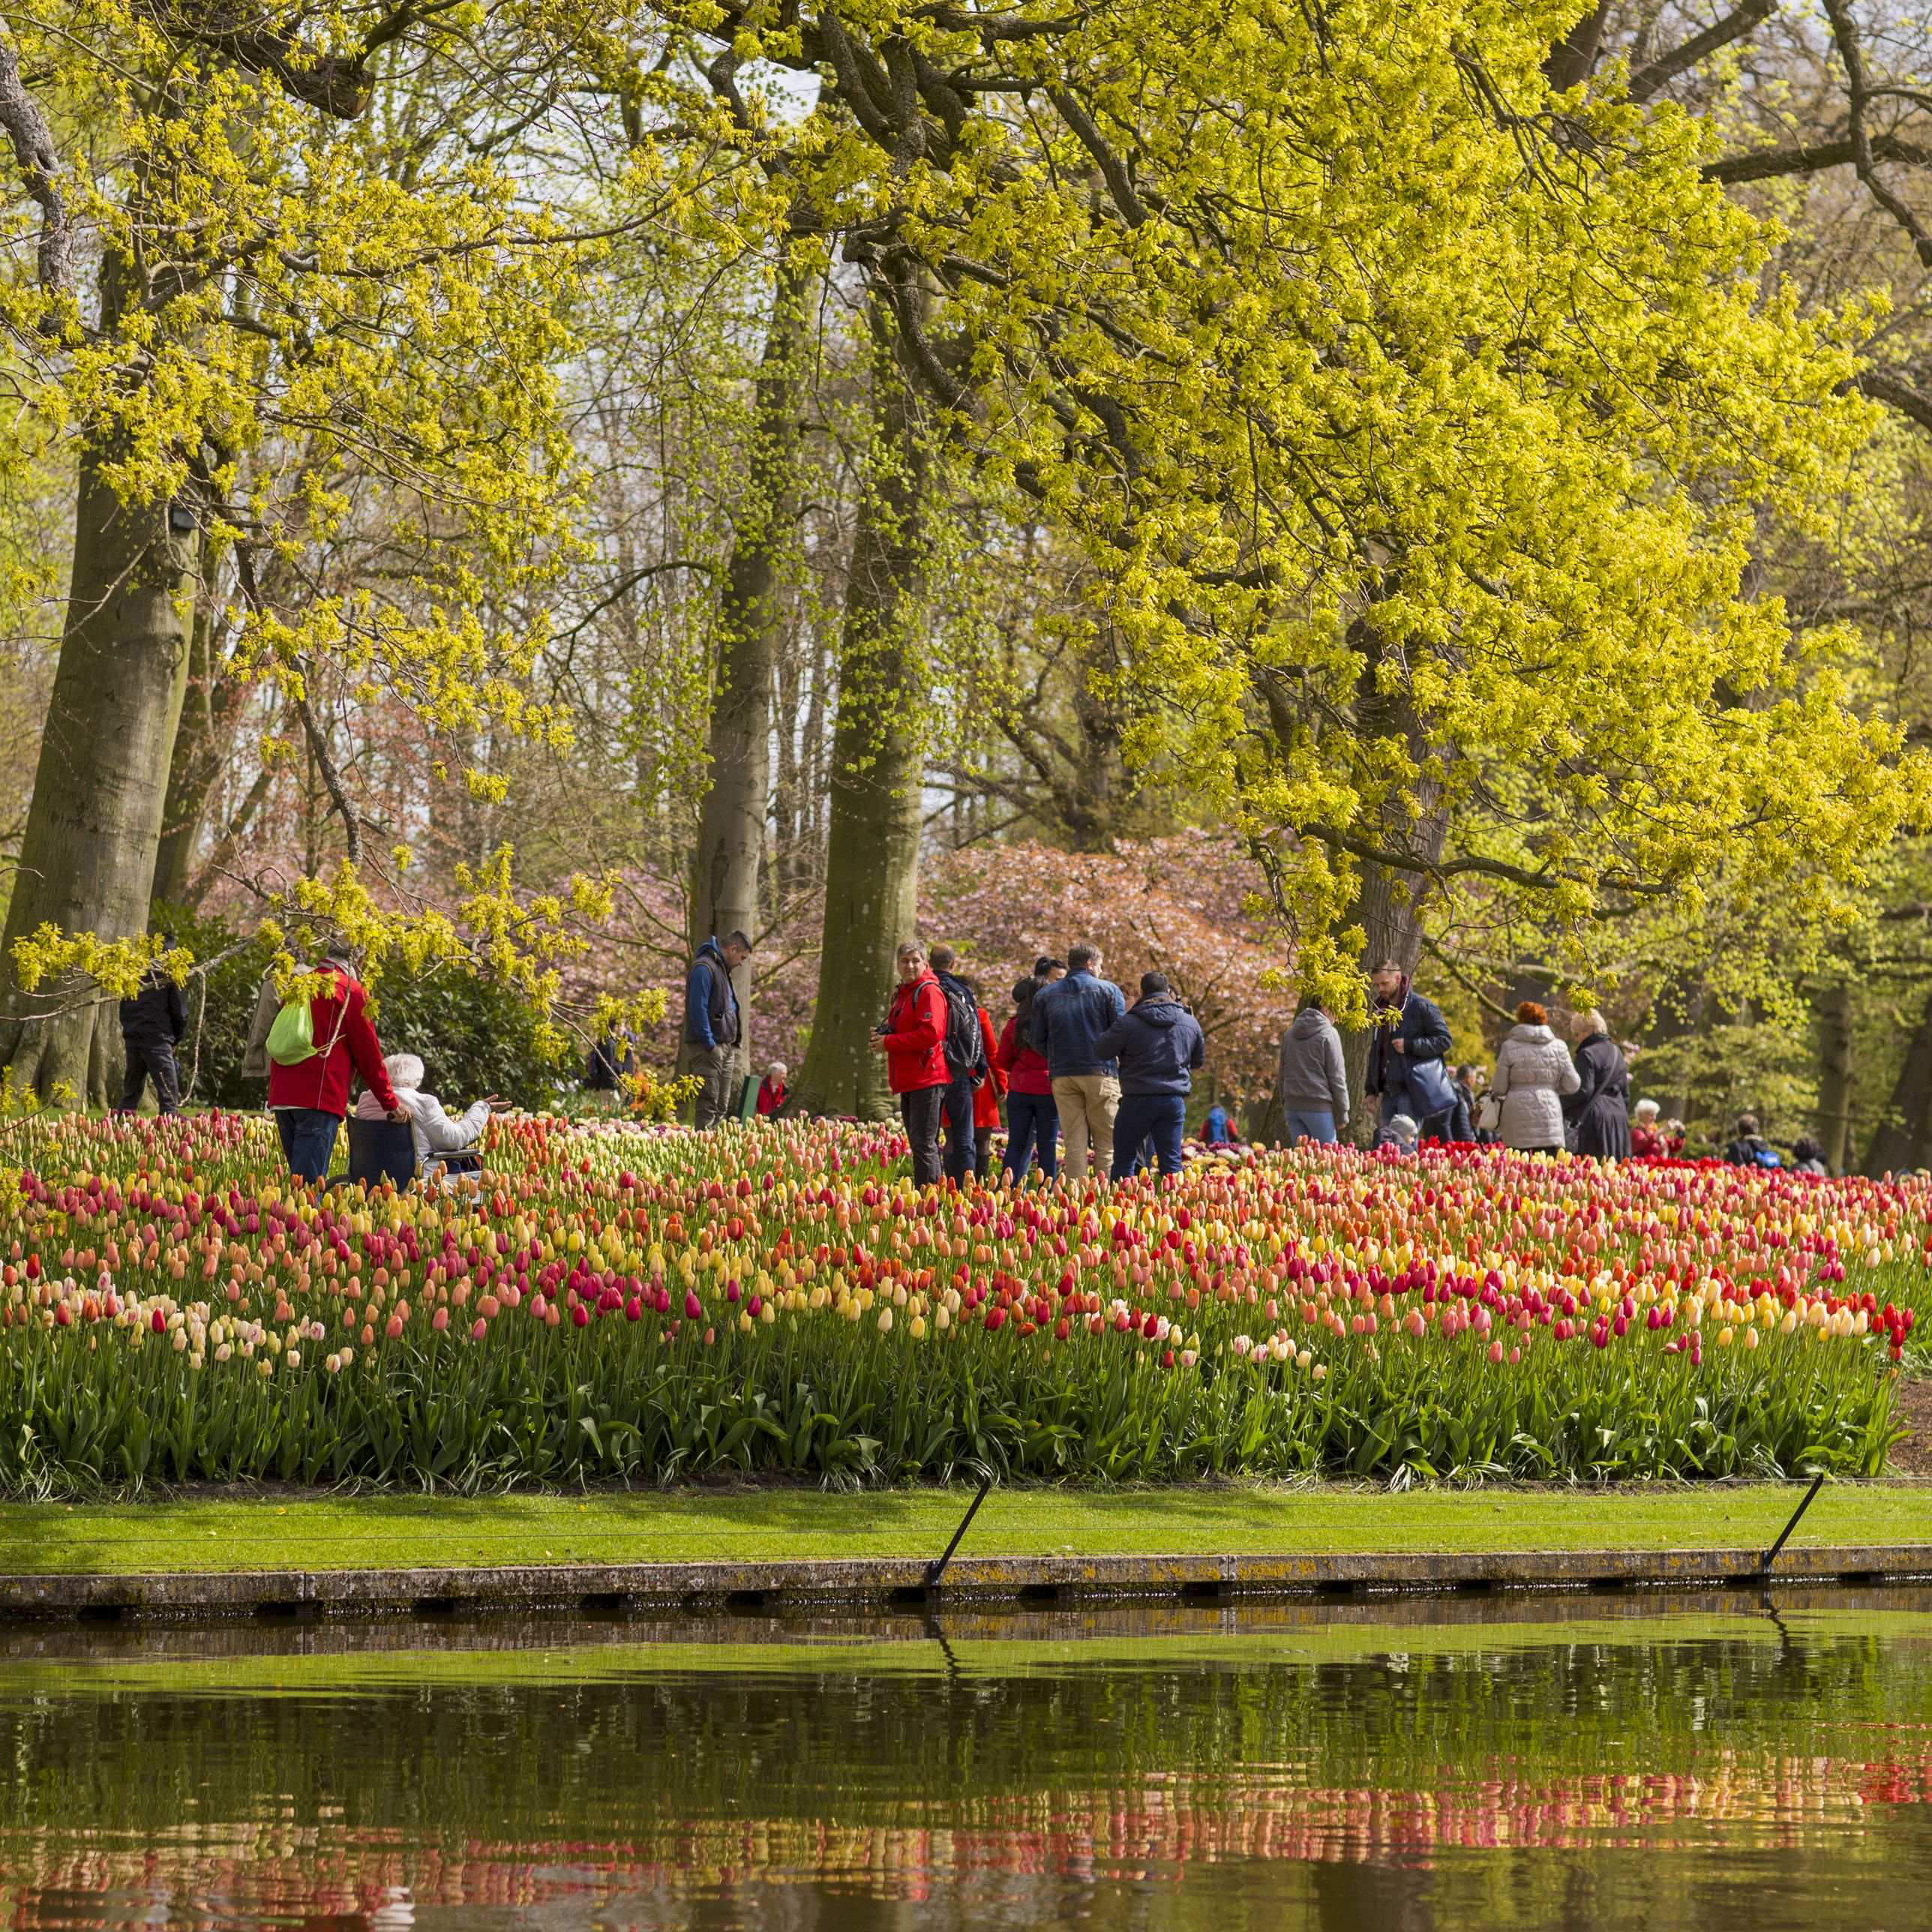 Guide to Seeing the Tulips Near Amsterdam on netherlands holland map, giethoorn holland map, zeeland holland map, edam holland map, maastricht holland map, amersfoort holland map, scheveningen holland map, amsterdam holland map, arnhem holland map, rotterdam holland map, europe holland map, leiden holland map, utrecht holland map, nijmegen holland map, hillegom holland map, eindhoven holland map, leeuwarden holland map, randstad holland map, delft holland map, haarlem holland map,